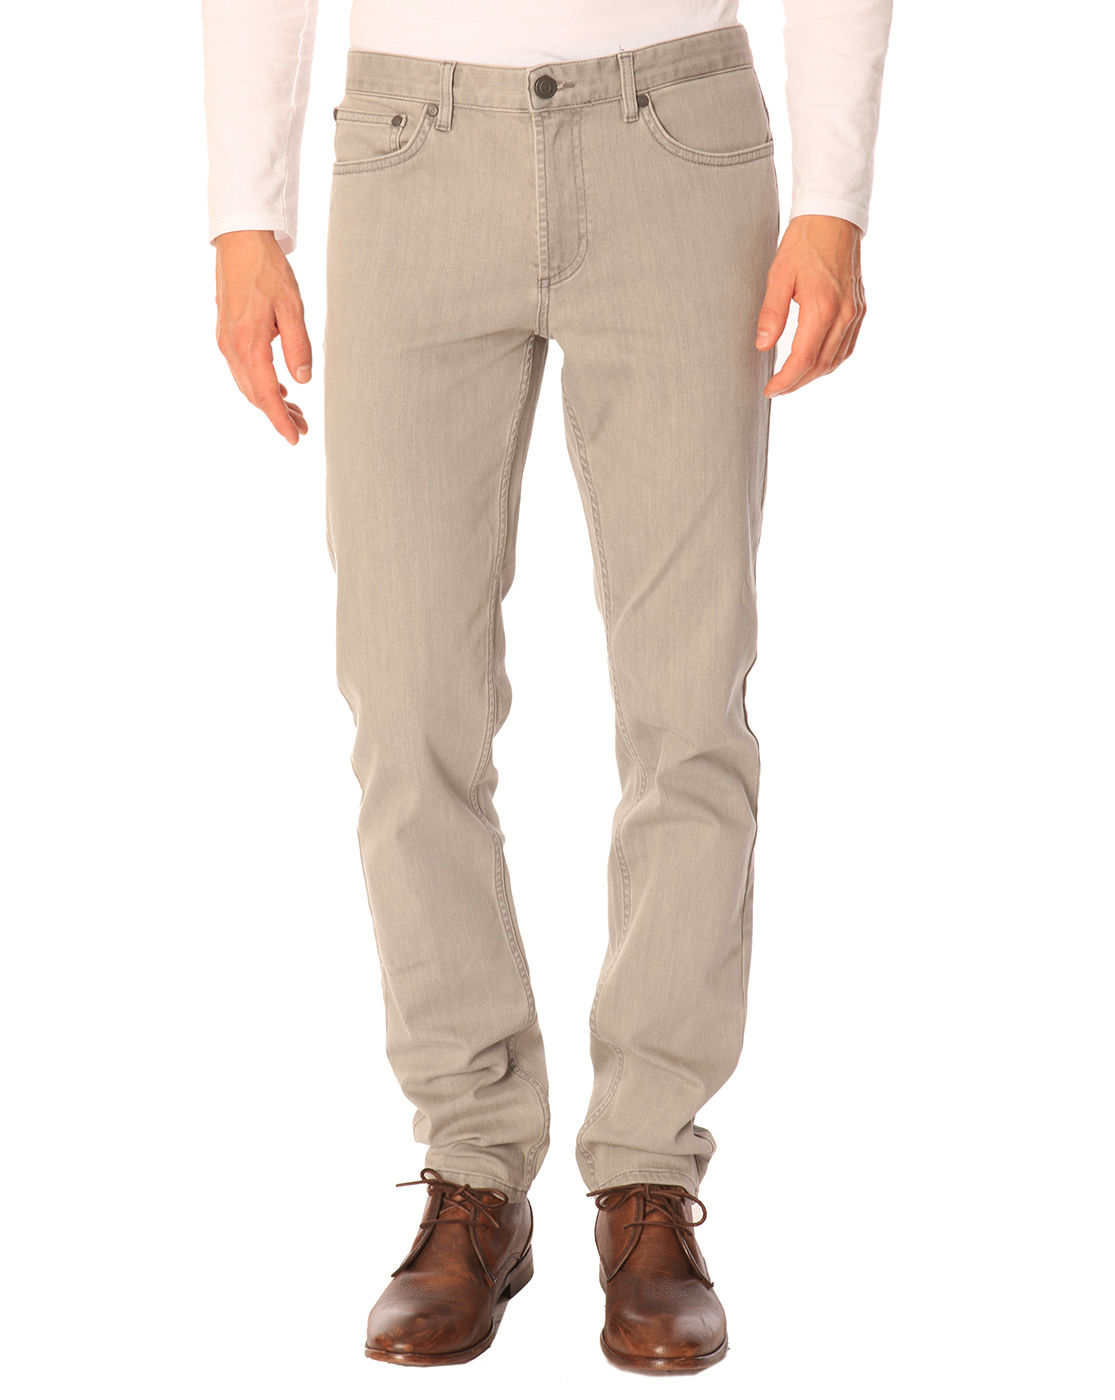 CKJ straight houston light blue jeans. More colors available straight leg jeans, jean shorts and more. Choose a fit, then have your choice of color with black jeans, white jeans for men, men's blue jeans or roeprocjfc.ga color and fit tells a different story. or slip into the laid back, comfortable yet fashionable jean joggers.